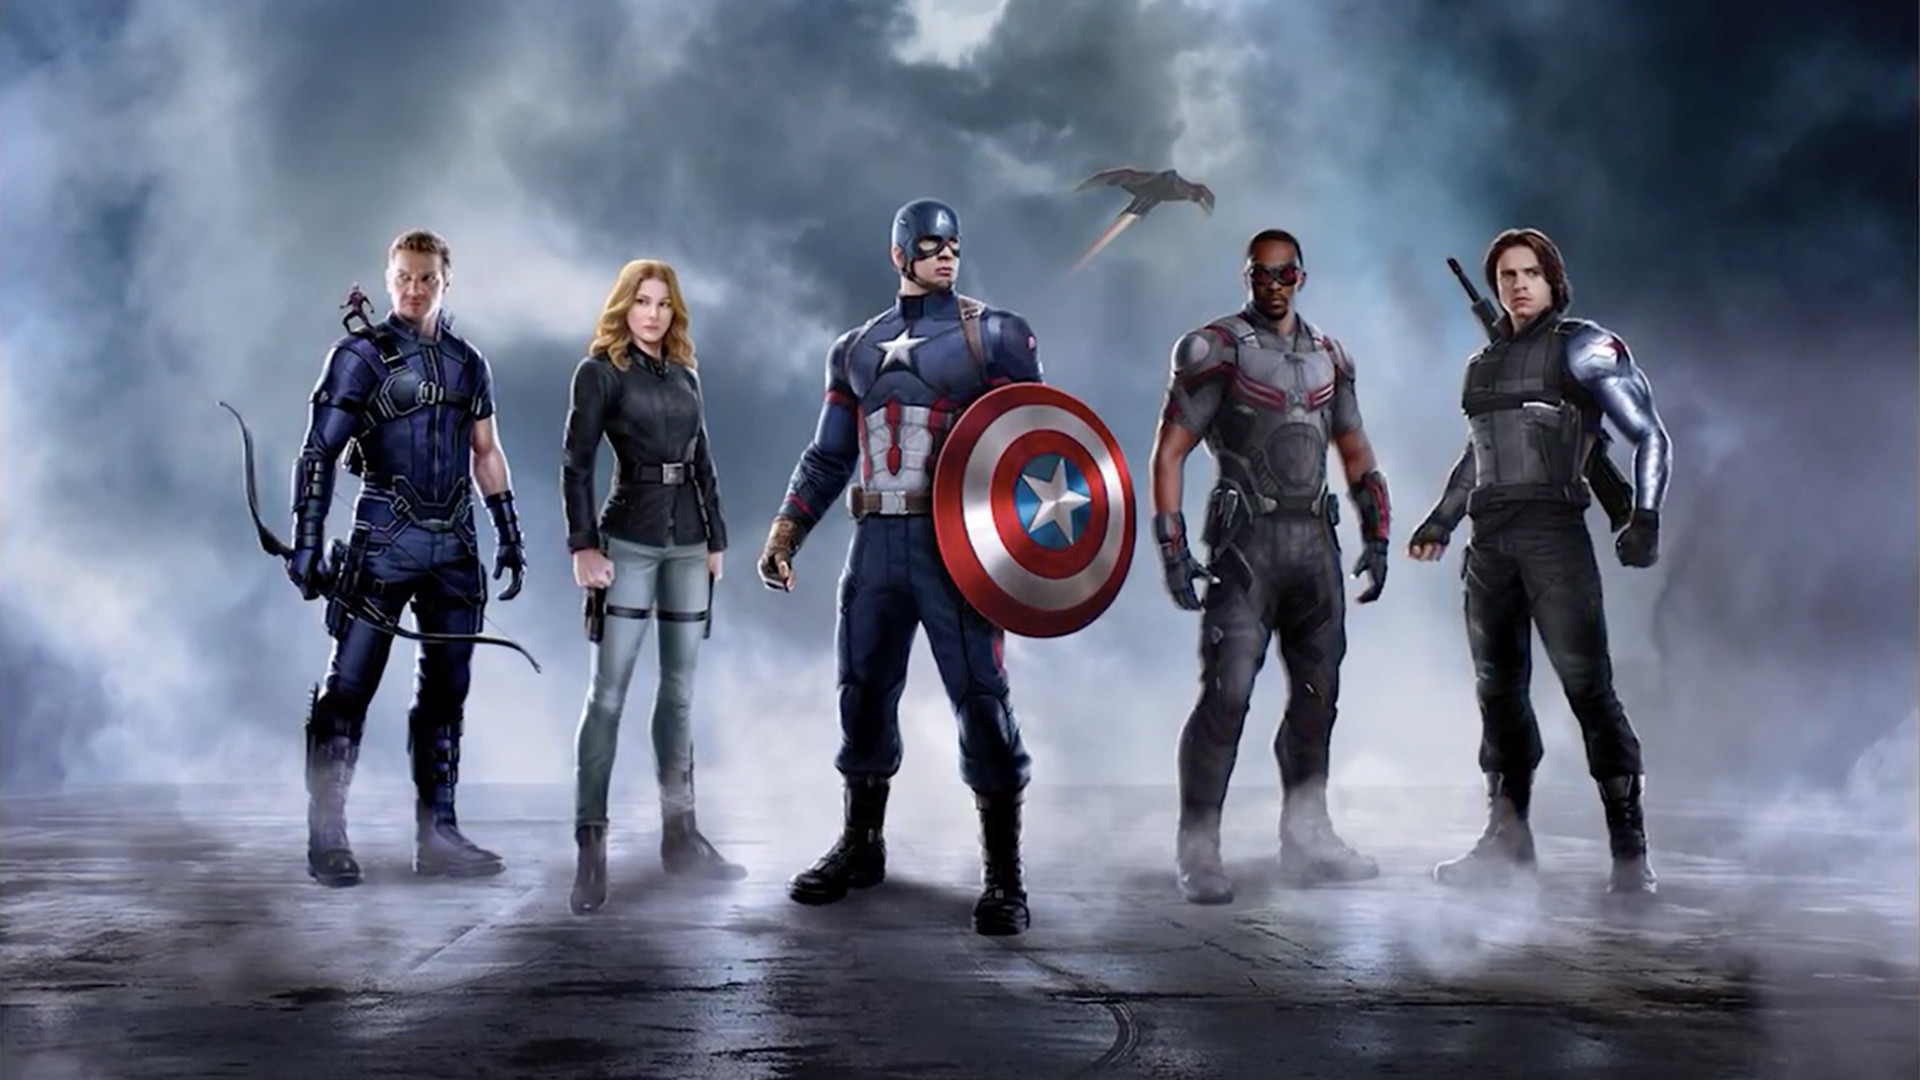 Captain America Hd Wallpapers 1080p 80 Images